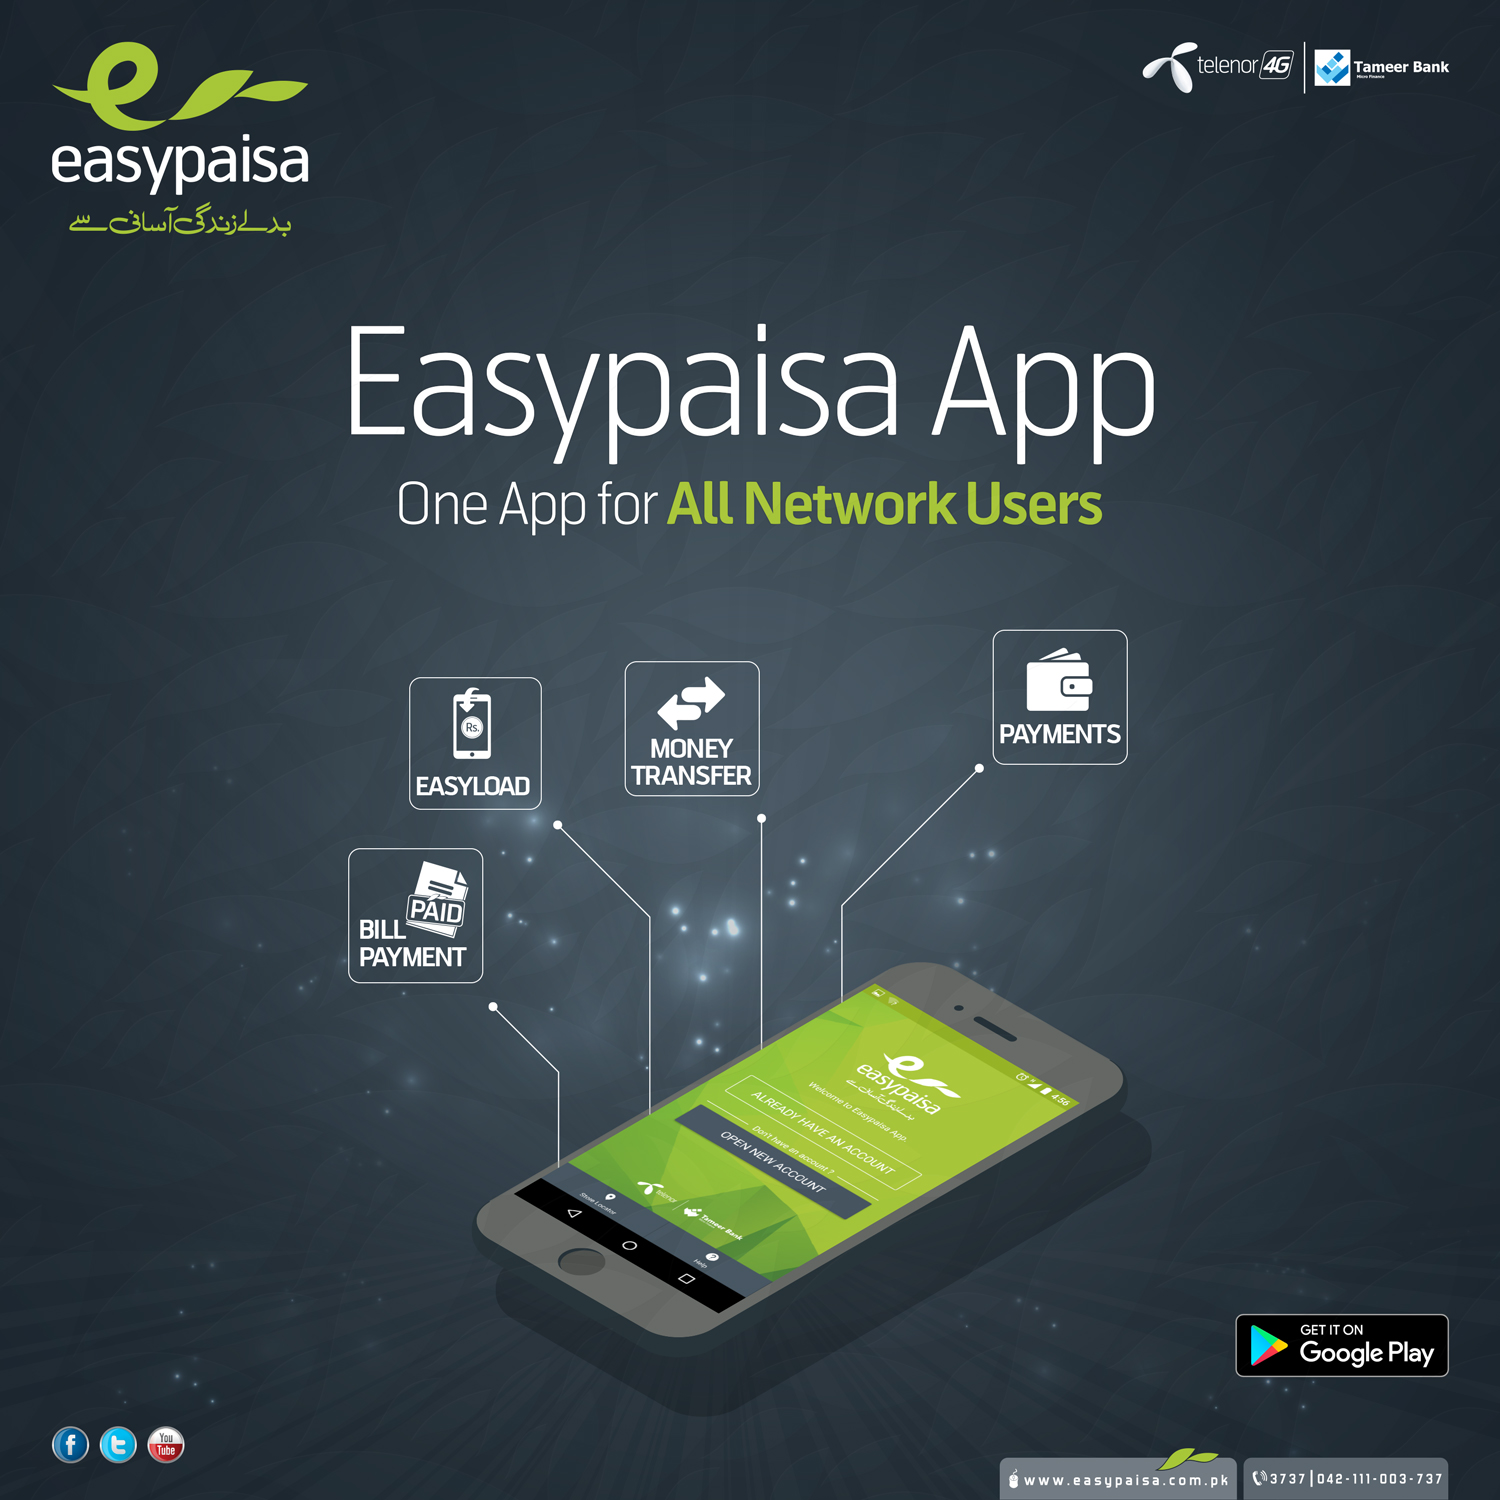 easypaisa-app-post